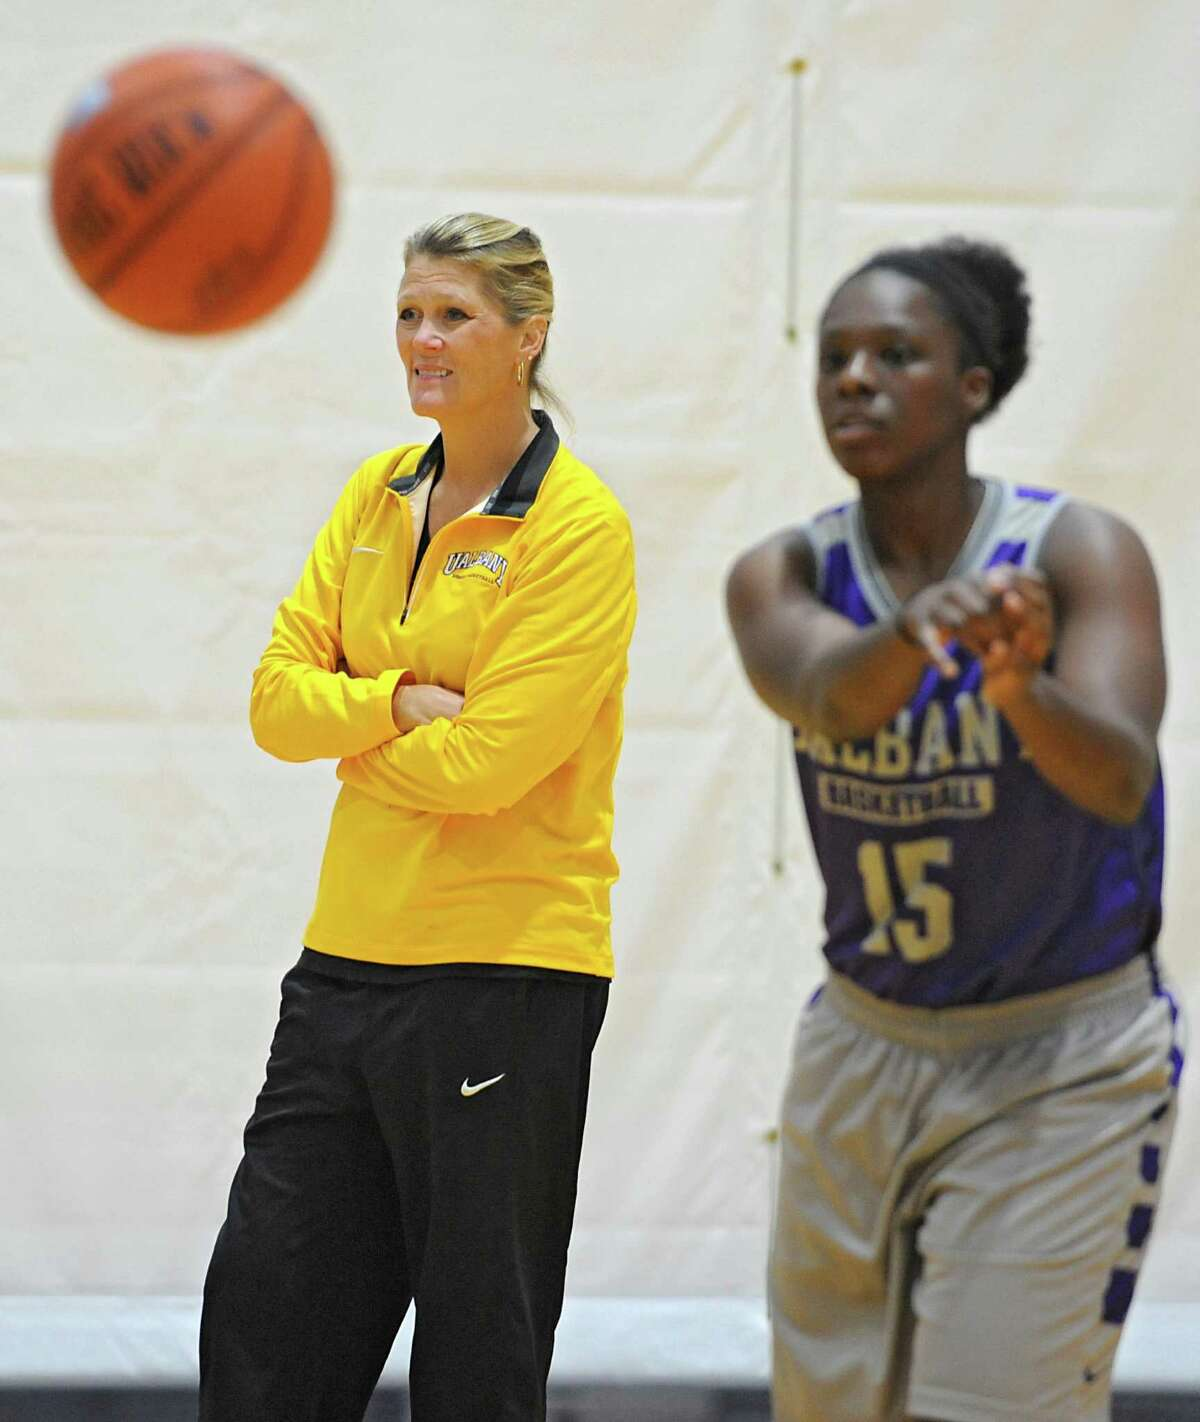 UAlbany women's basketball coach Katie Abrahamson-Henderson, left, watches her team during practice on Thursday, Oct. 15, 2015 at the SEFCU Arena in Albany, N.Y. (Lori Van Buren / Times Union)